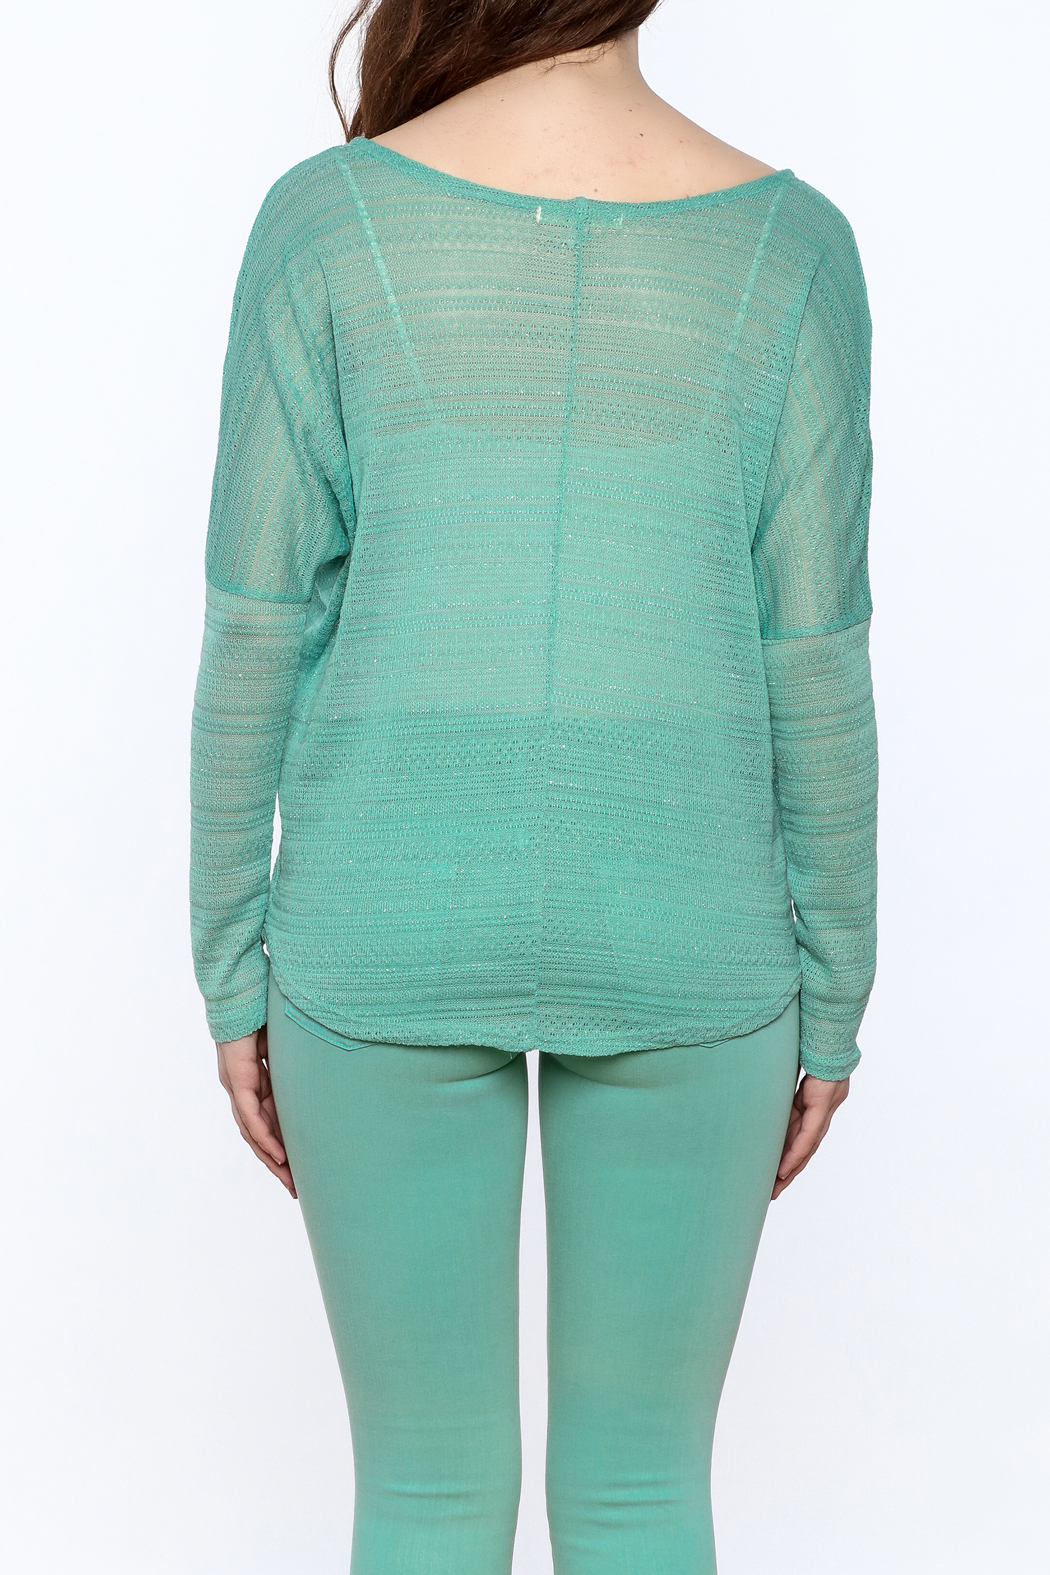 Elise Mint Green Knit Top - Back Cropped Image